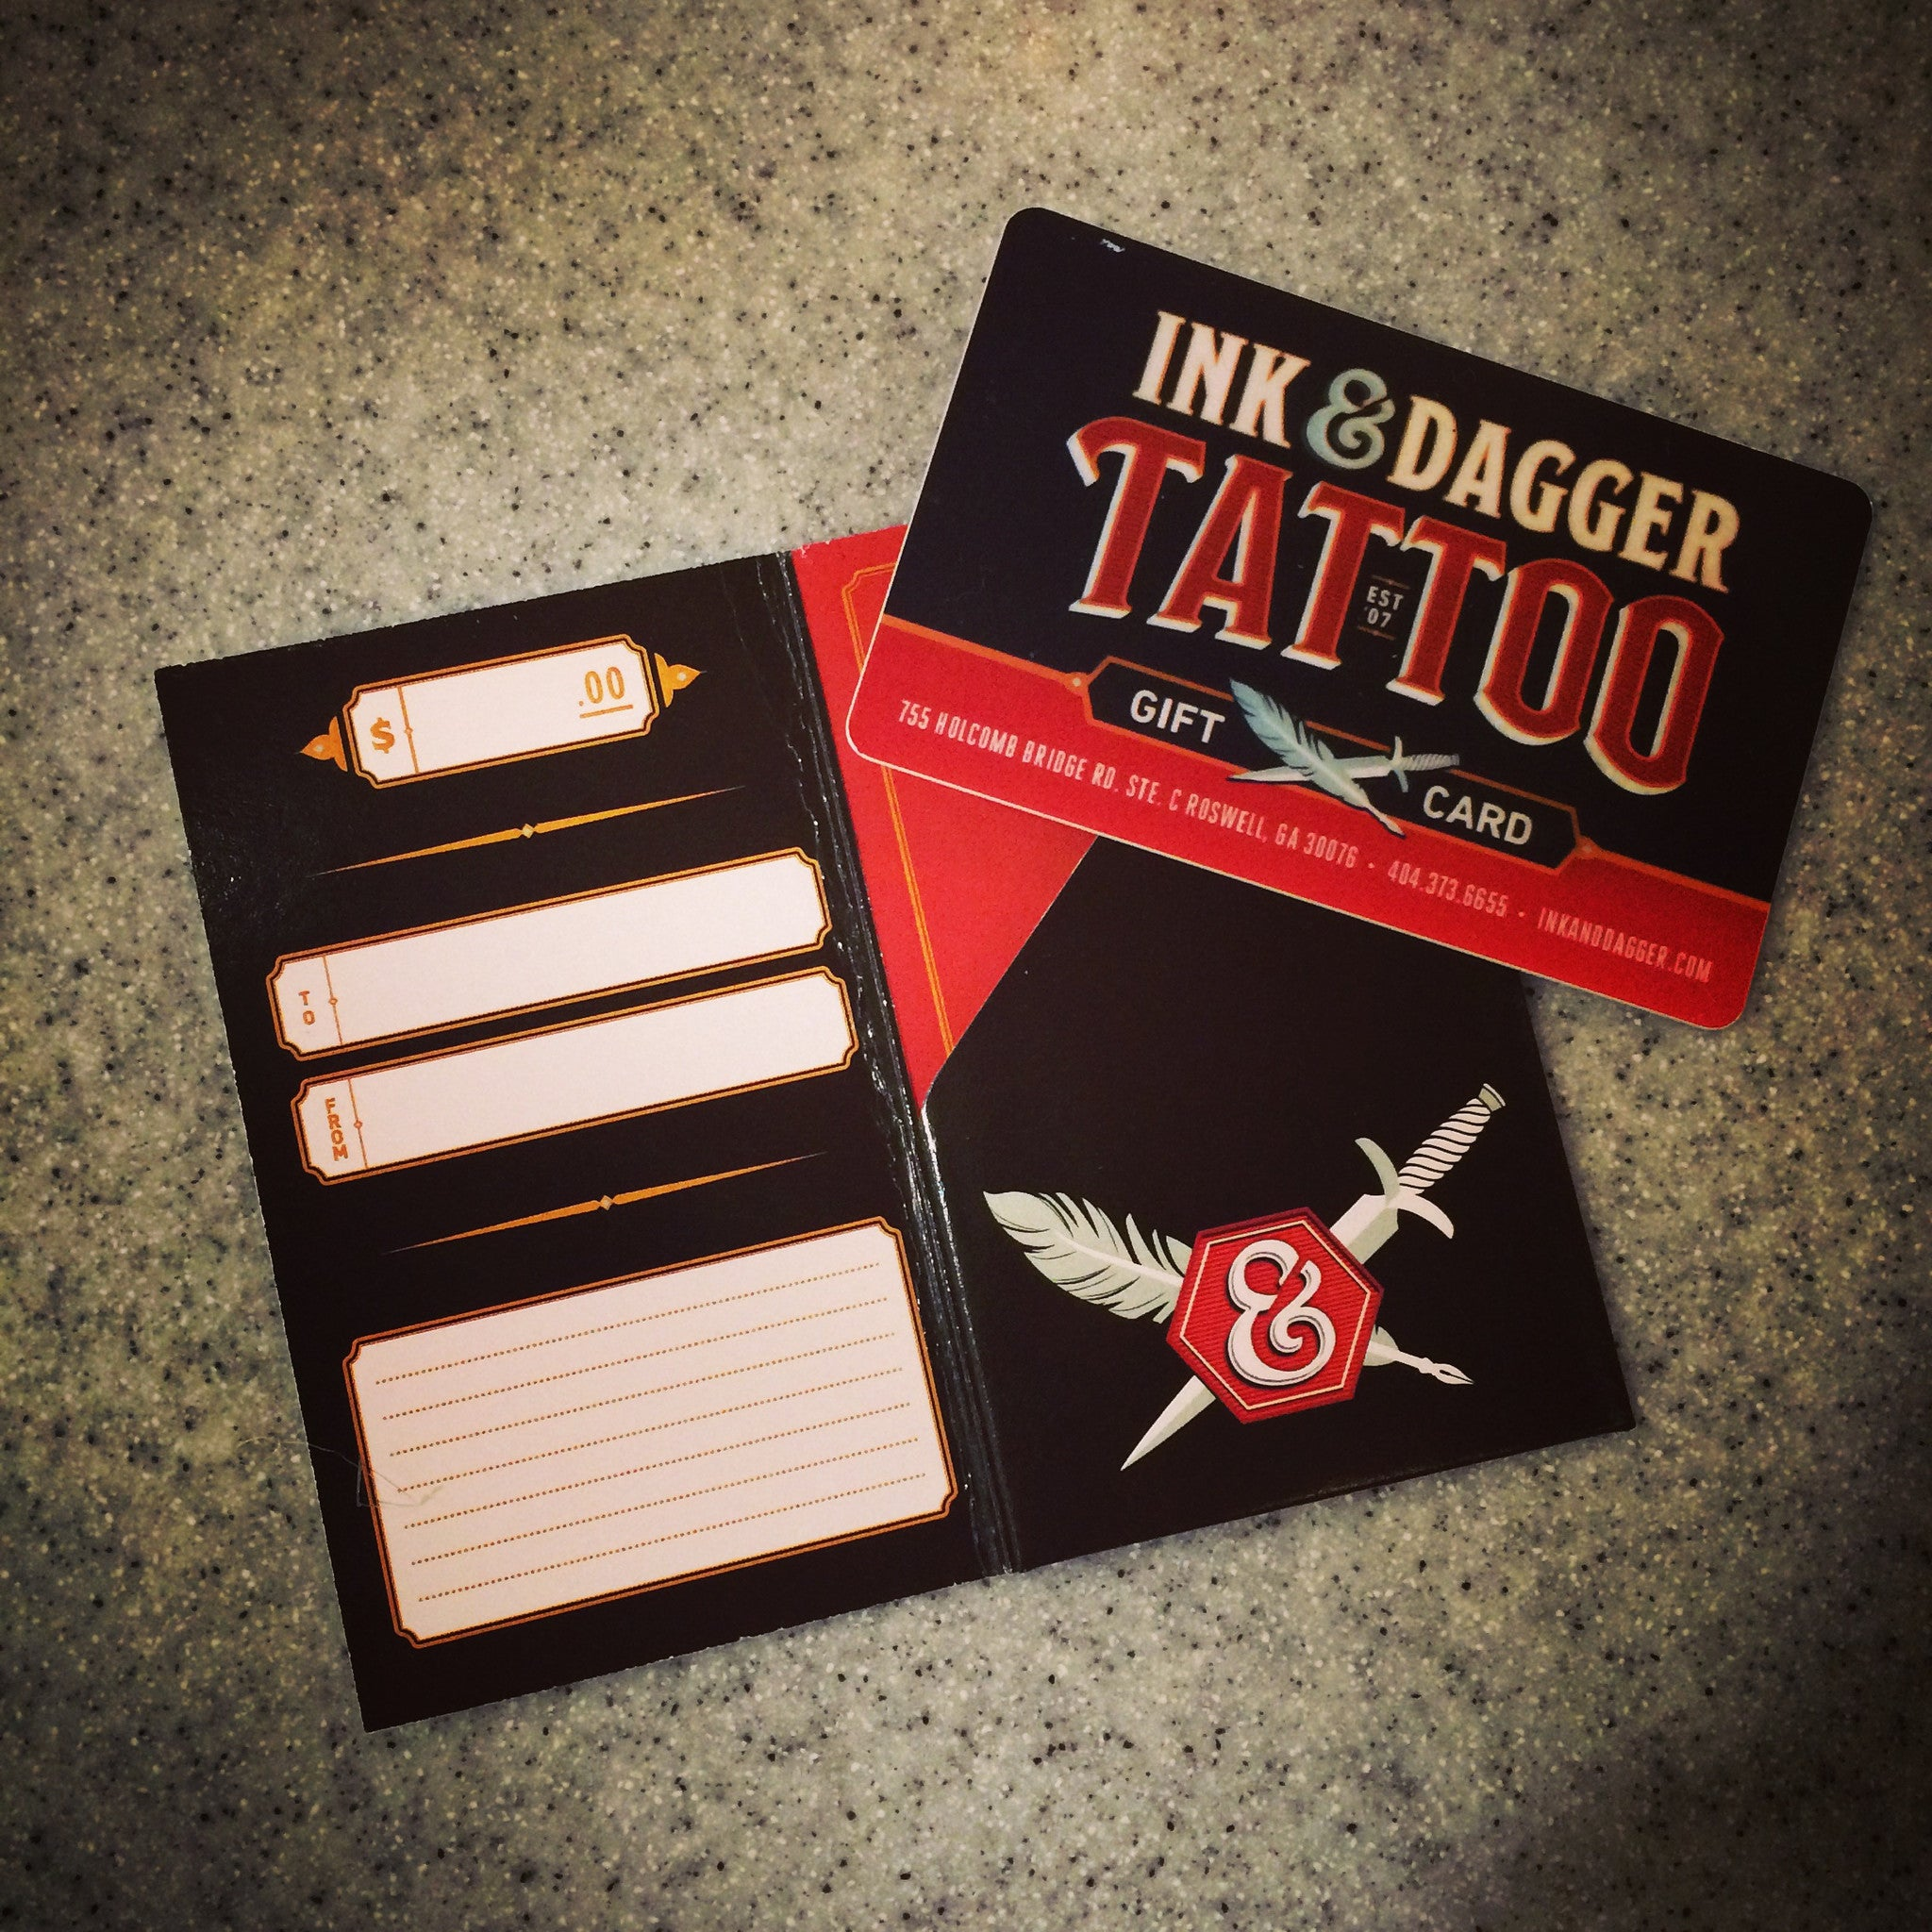 Ink dagger tattoo gift card ink dagger tattoo store xflitez Image collections